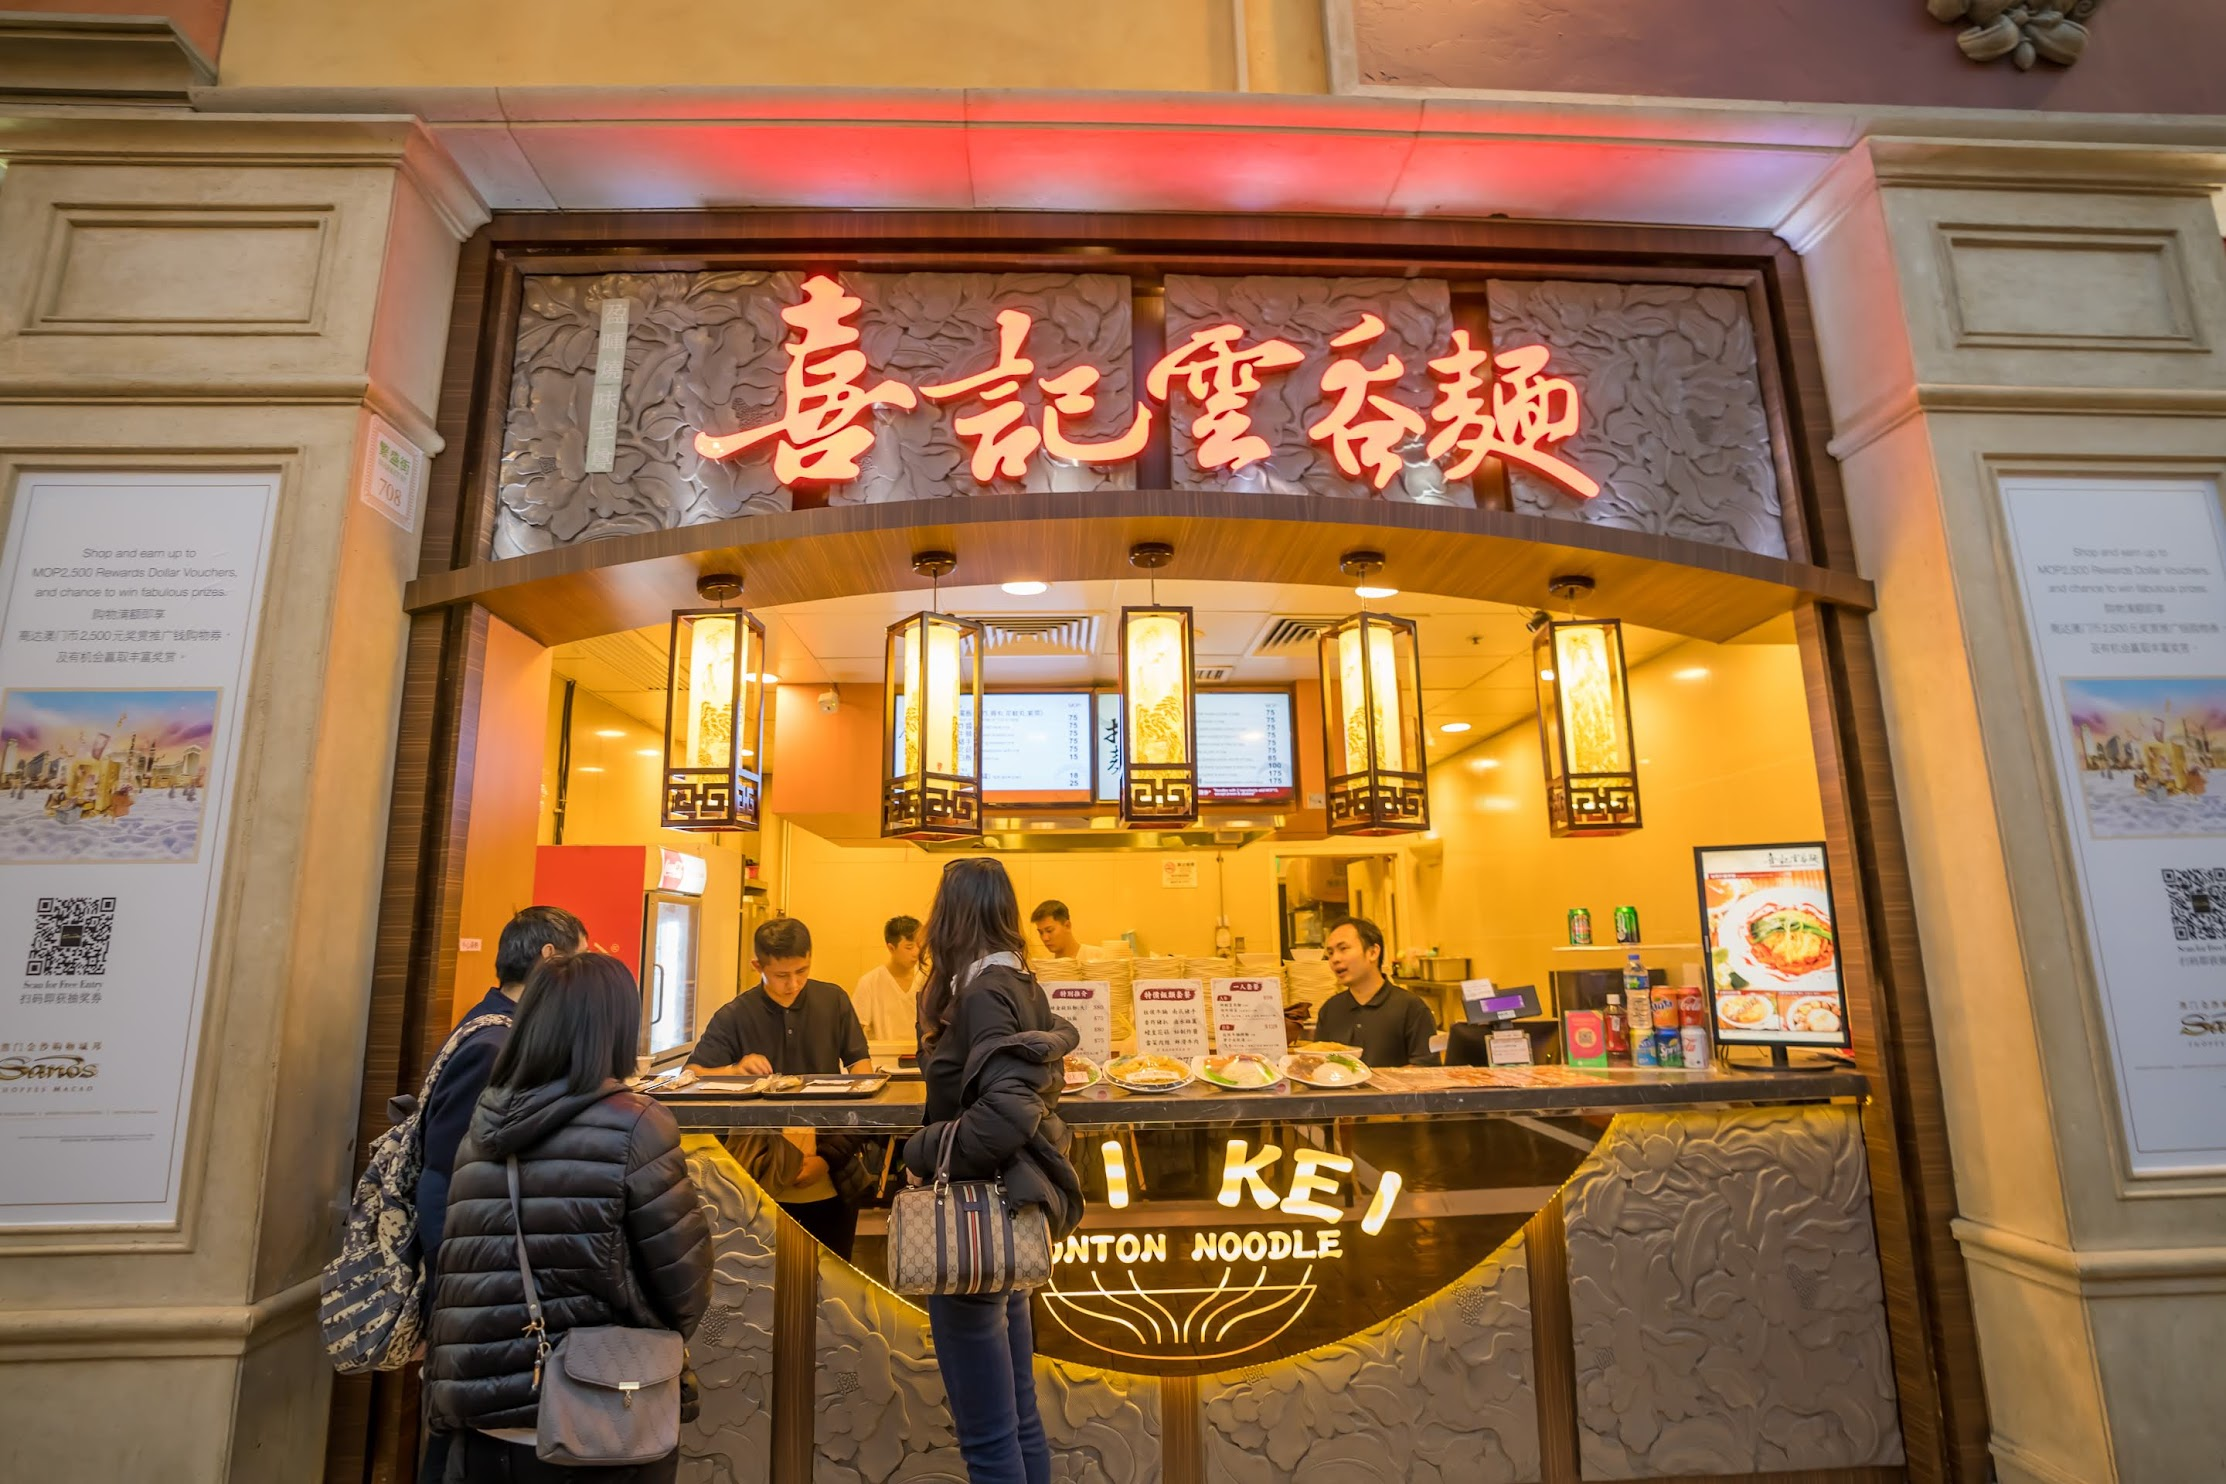 Venetian Macao food court Hei Kei Wanton Noodles1